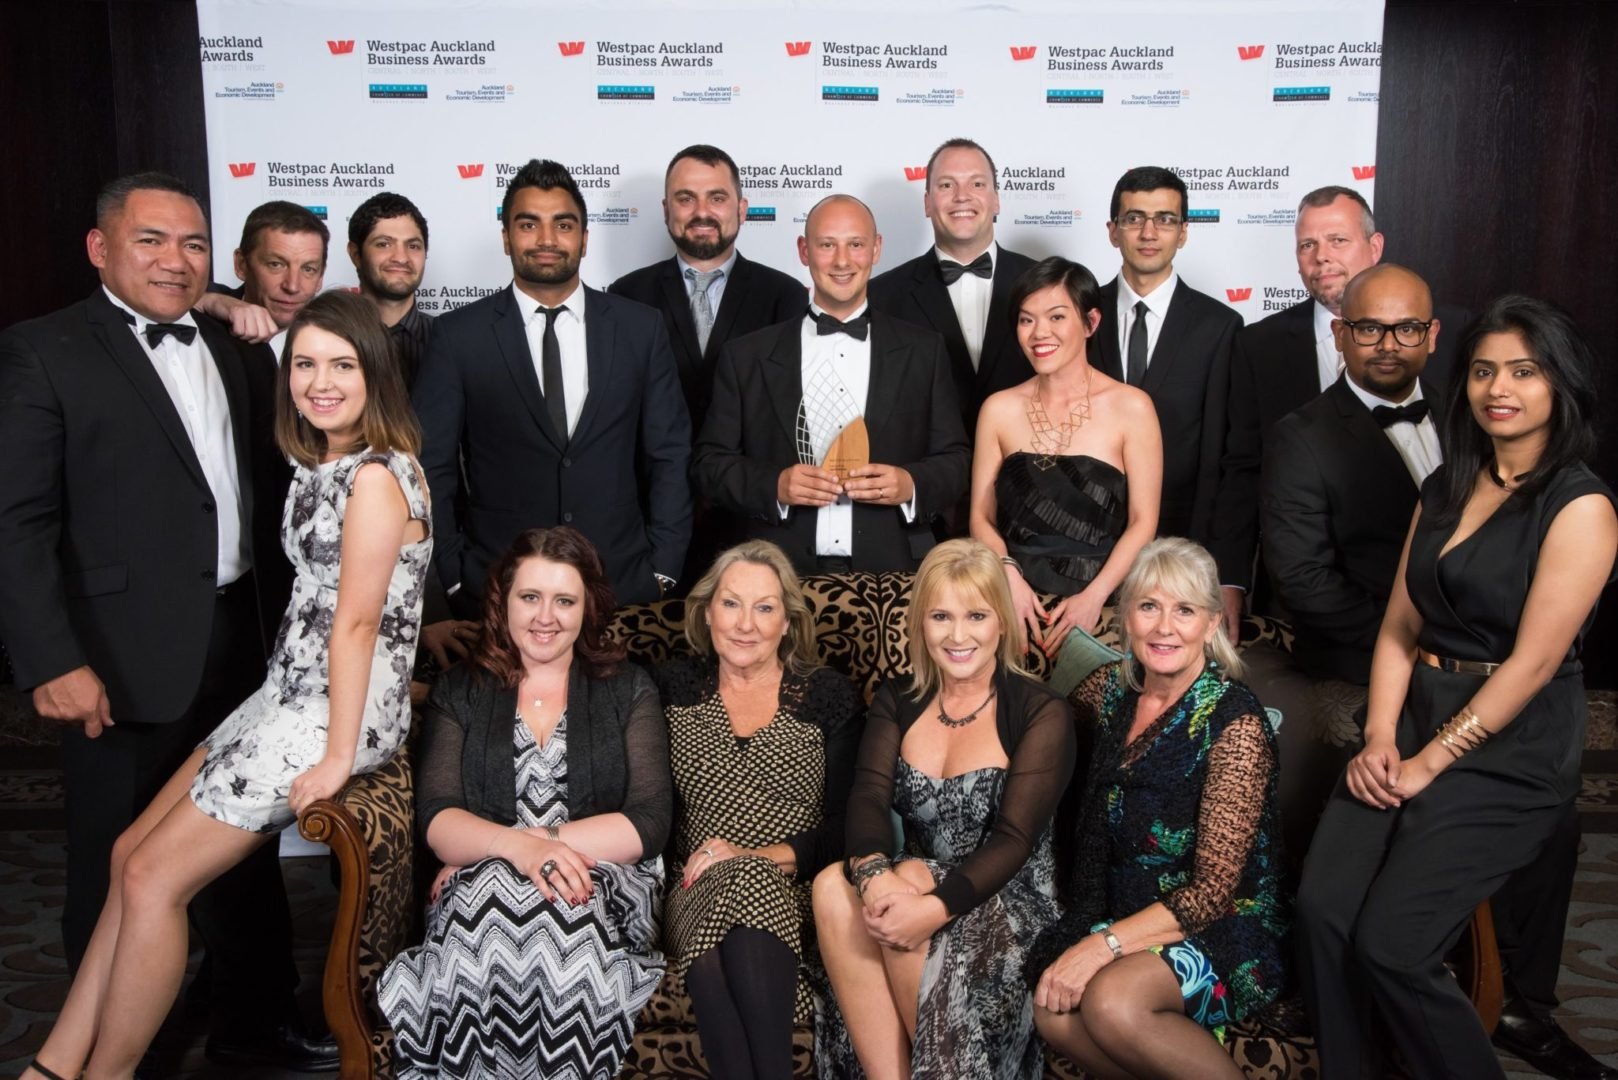 Westpac Auckland Business Awards 2014 Central